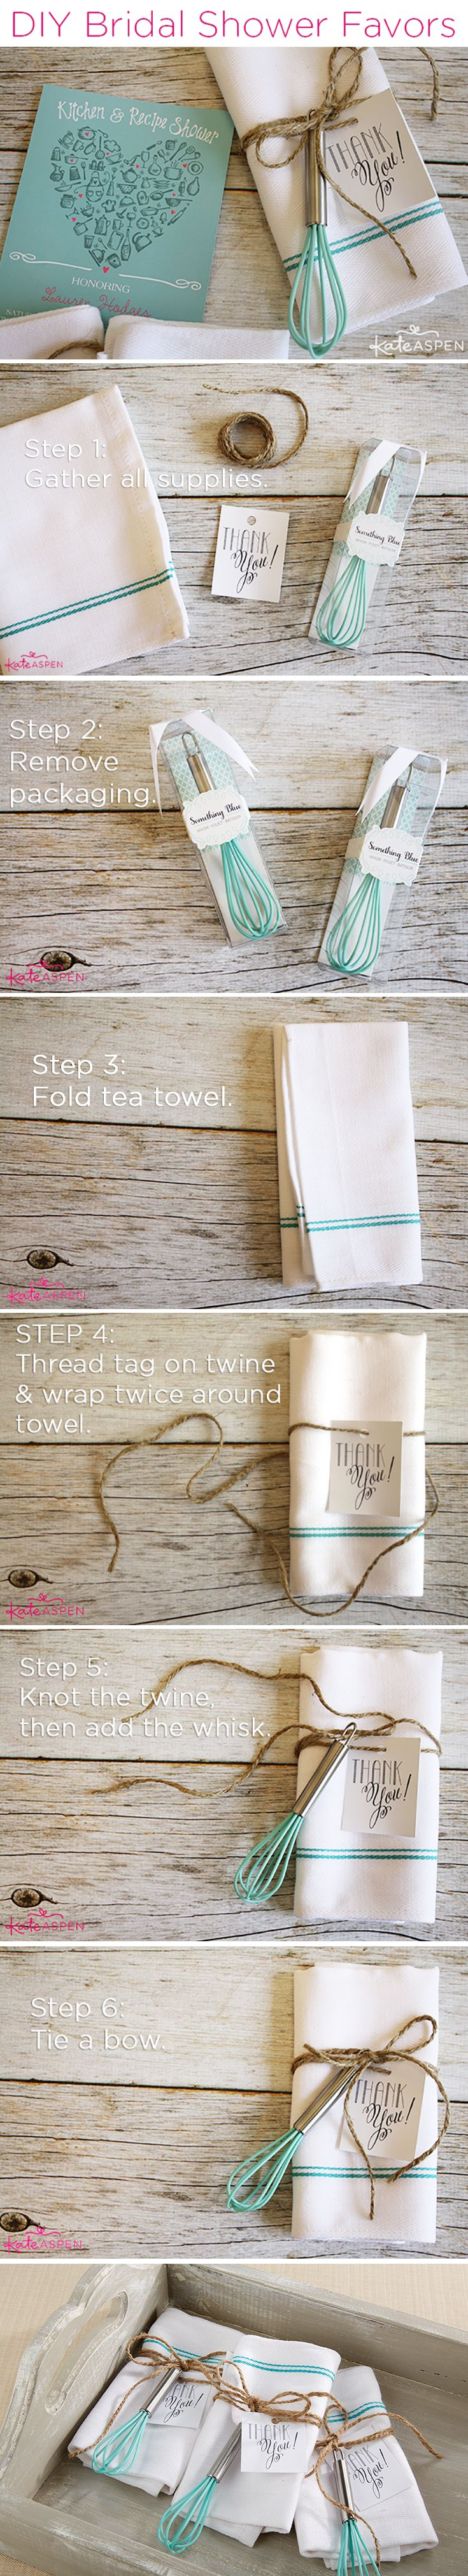 Make a practical and affordable favor that's perfect for a kitchen themed bridal shower! | DIY Bridal Shower Whisk and Tea Towel Favors